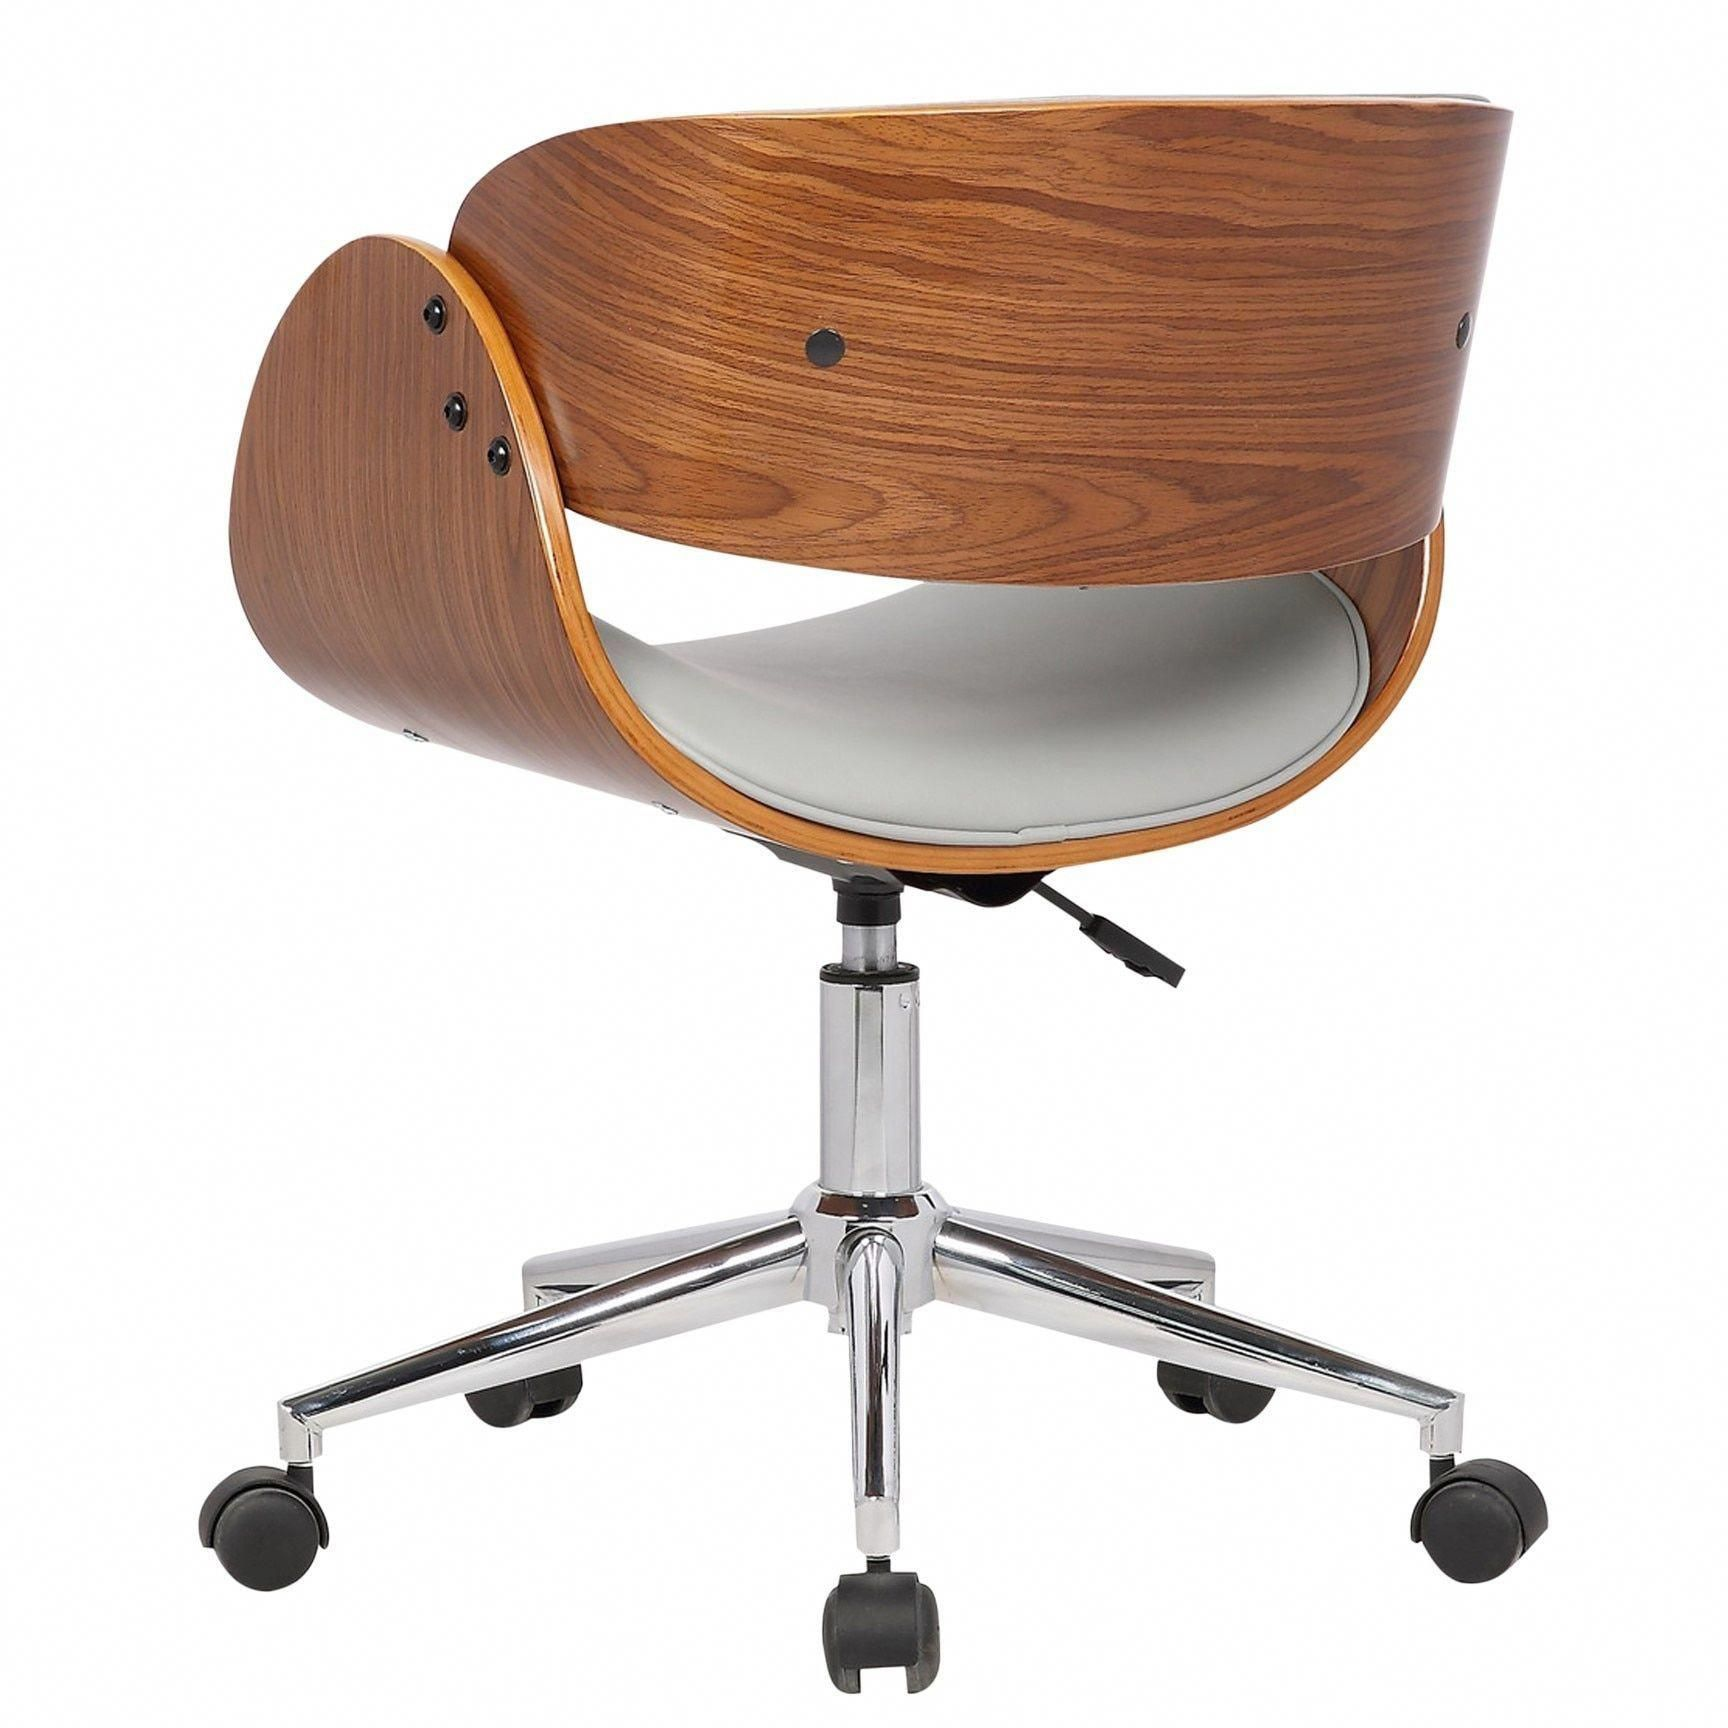 Office Chair Without Wheels CheapestPlasticChairs